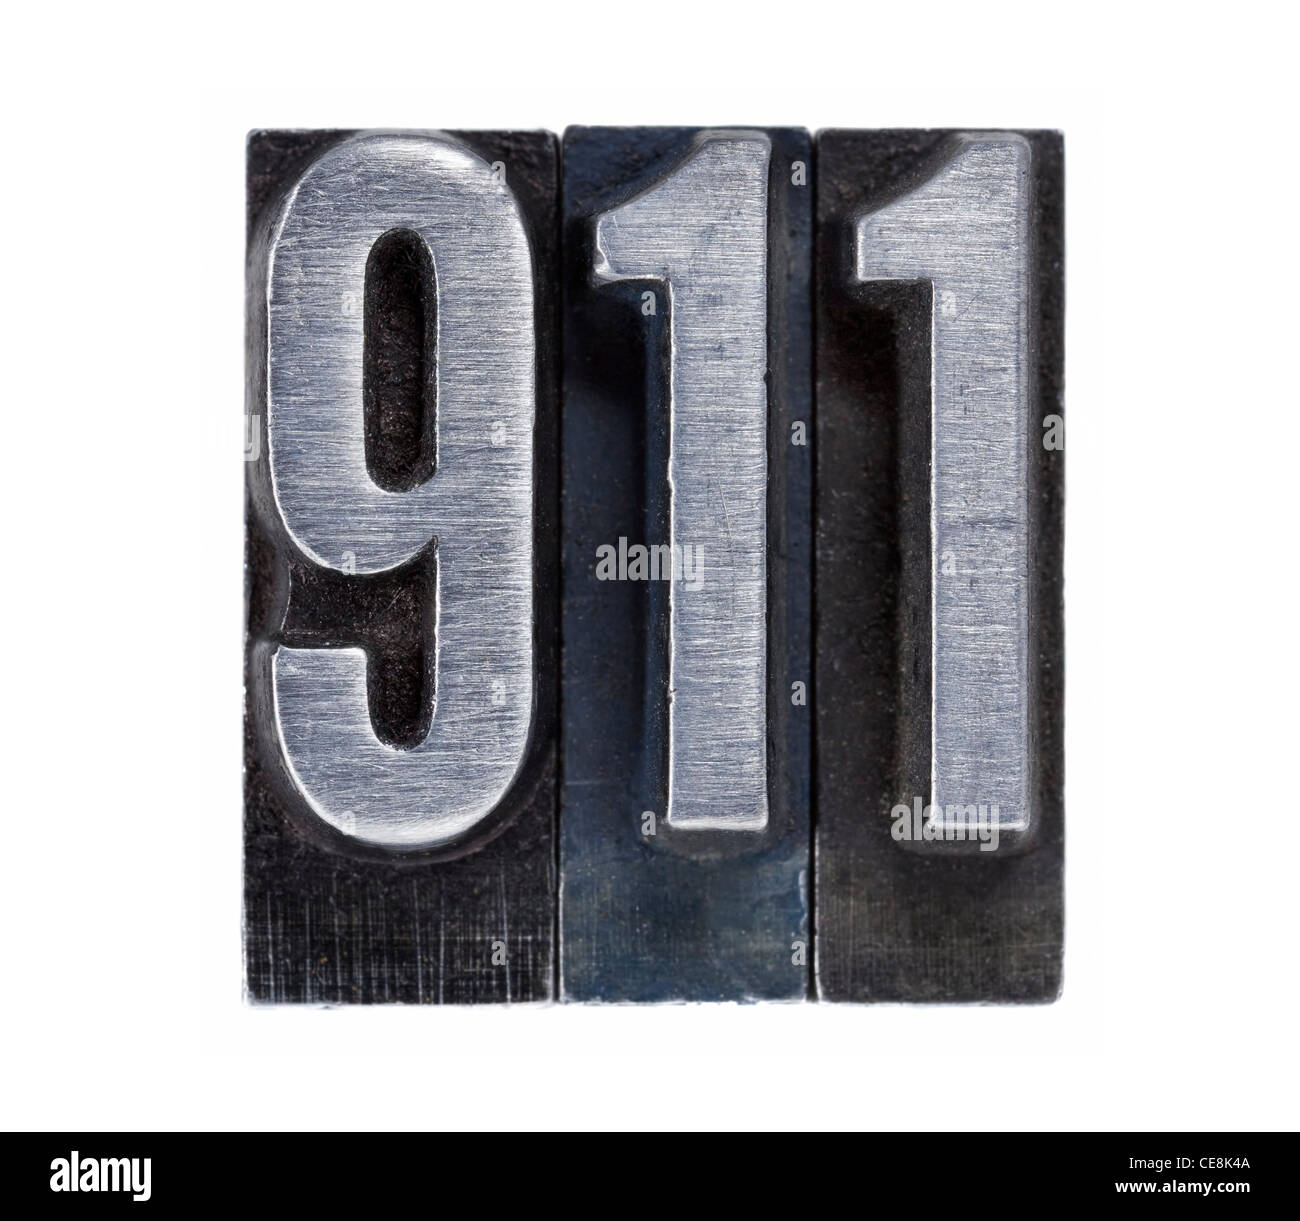 emergency phone number 911 or terrorist attack date - isolated text in vintage grunge metal letterpress type - Stock Image